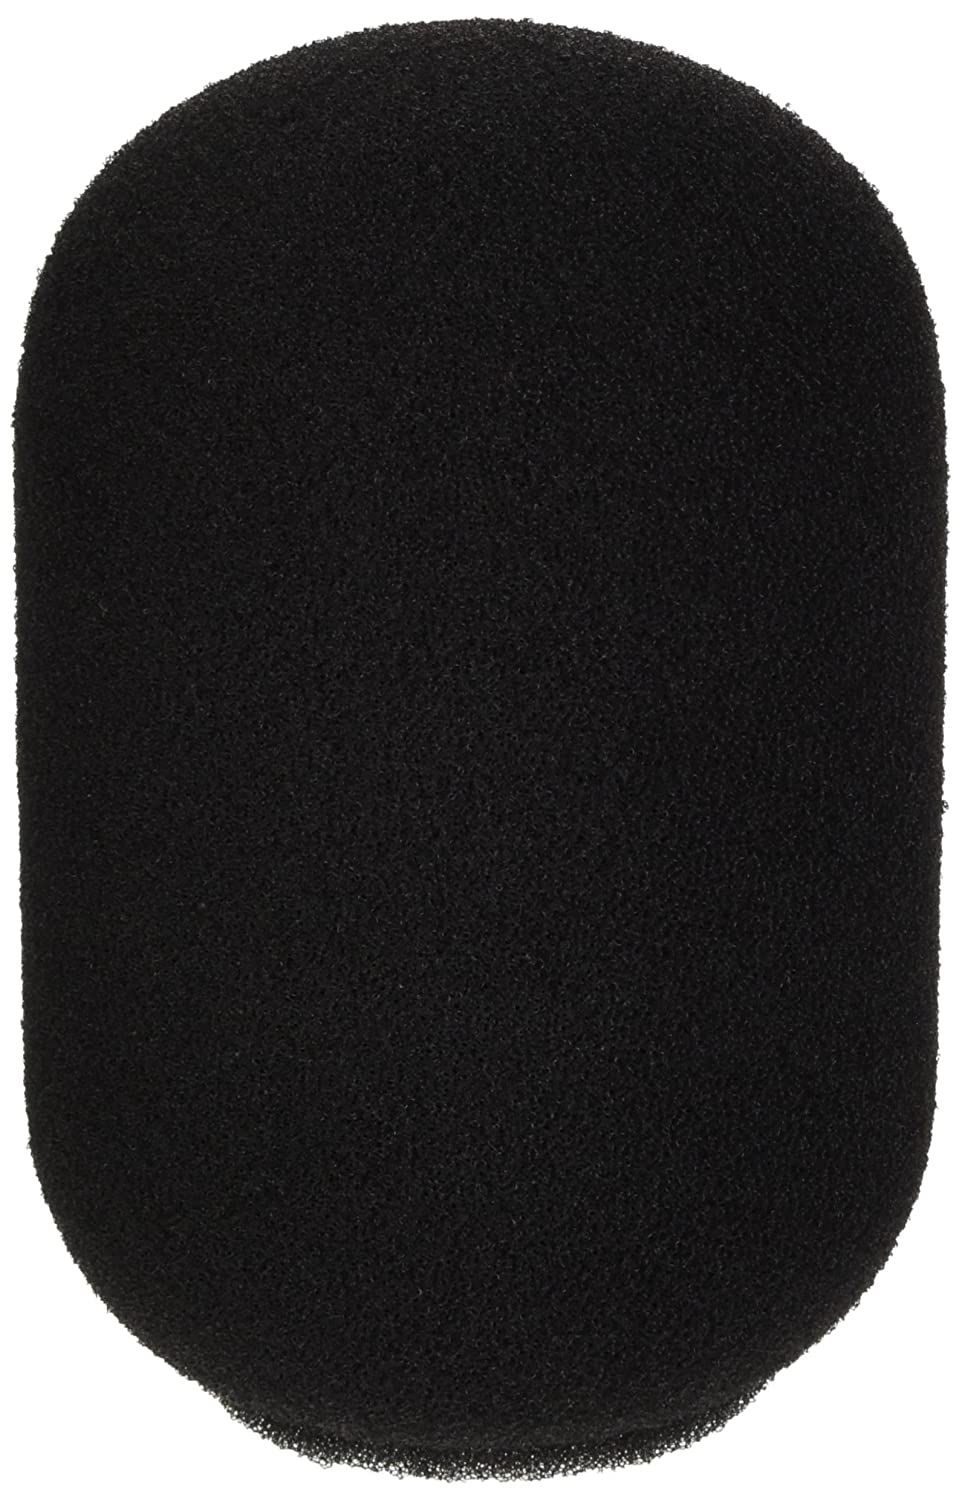 Shure A7WS Gray Large Close-Talk Windscreen for SM7 Models Shure Incorporated